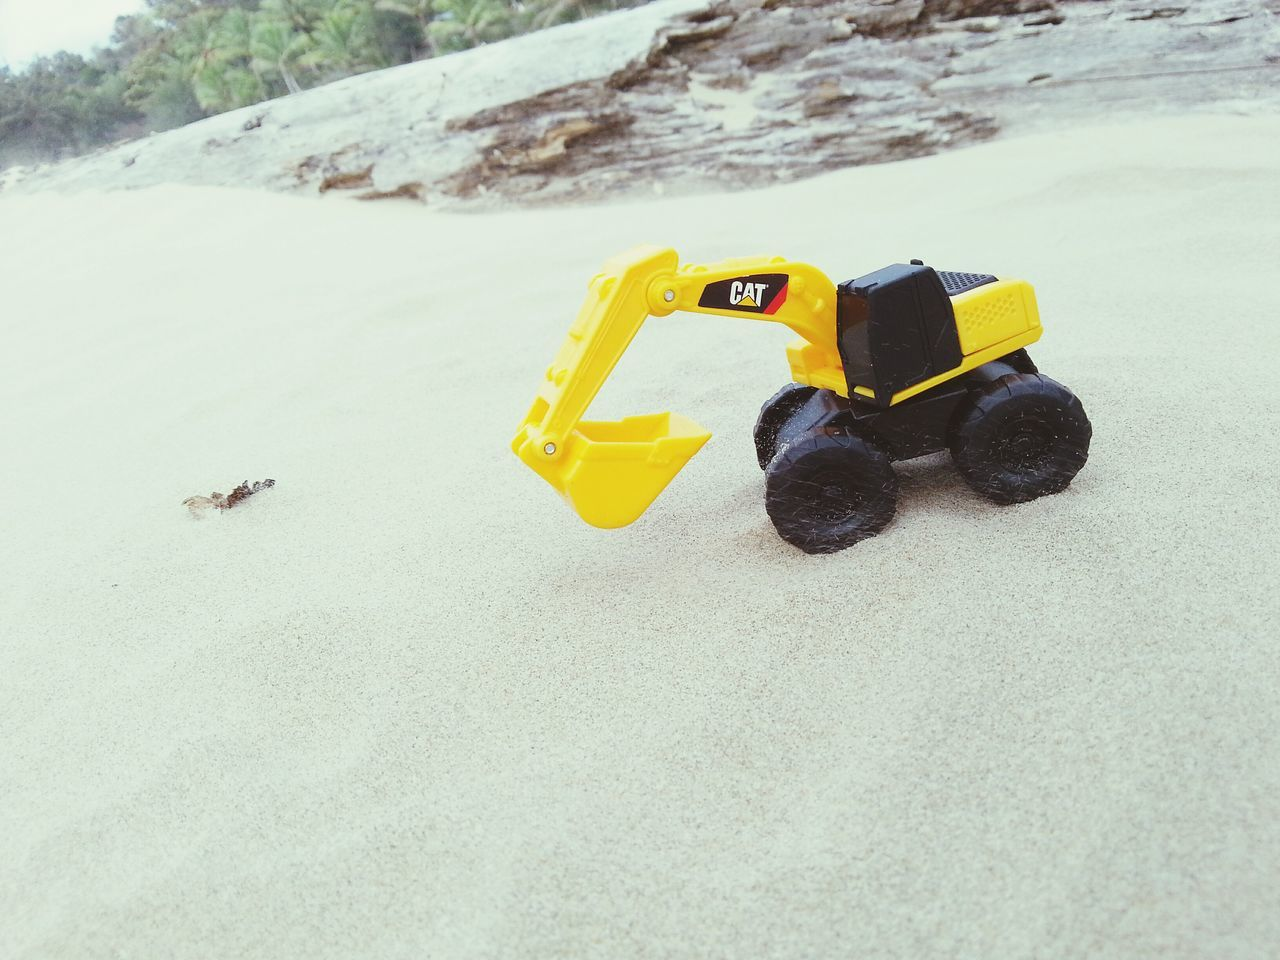 Small Toy Yellow Outdoors Beach Sandy Beach Sand Cat Kobelco No People Day Coastline Sea Trucker Cats Truck Toy